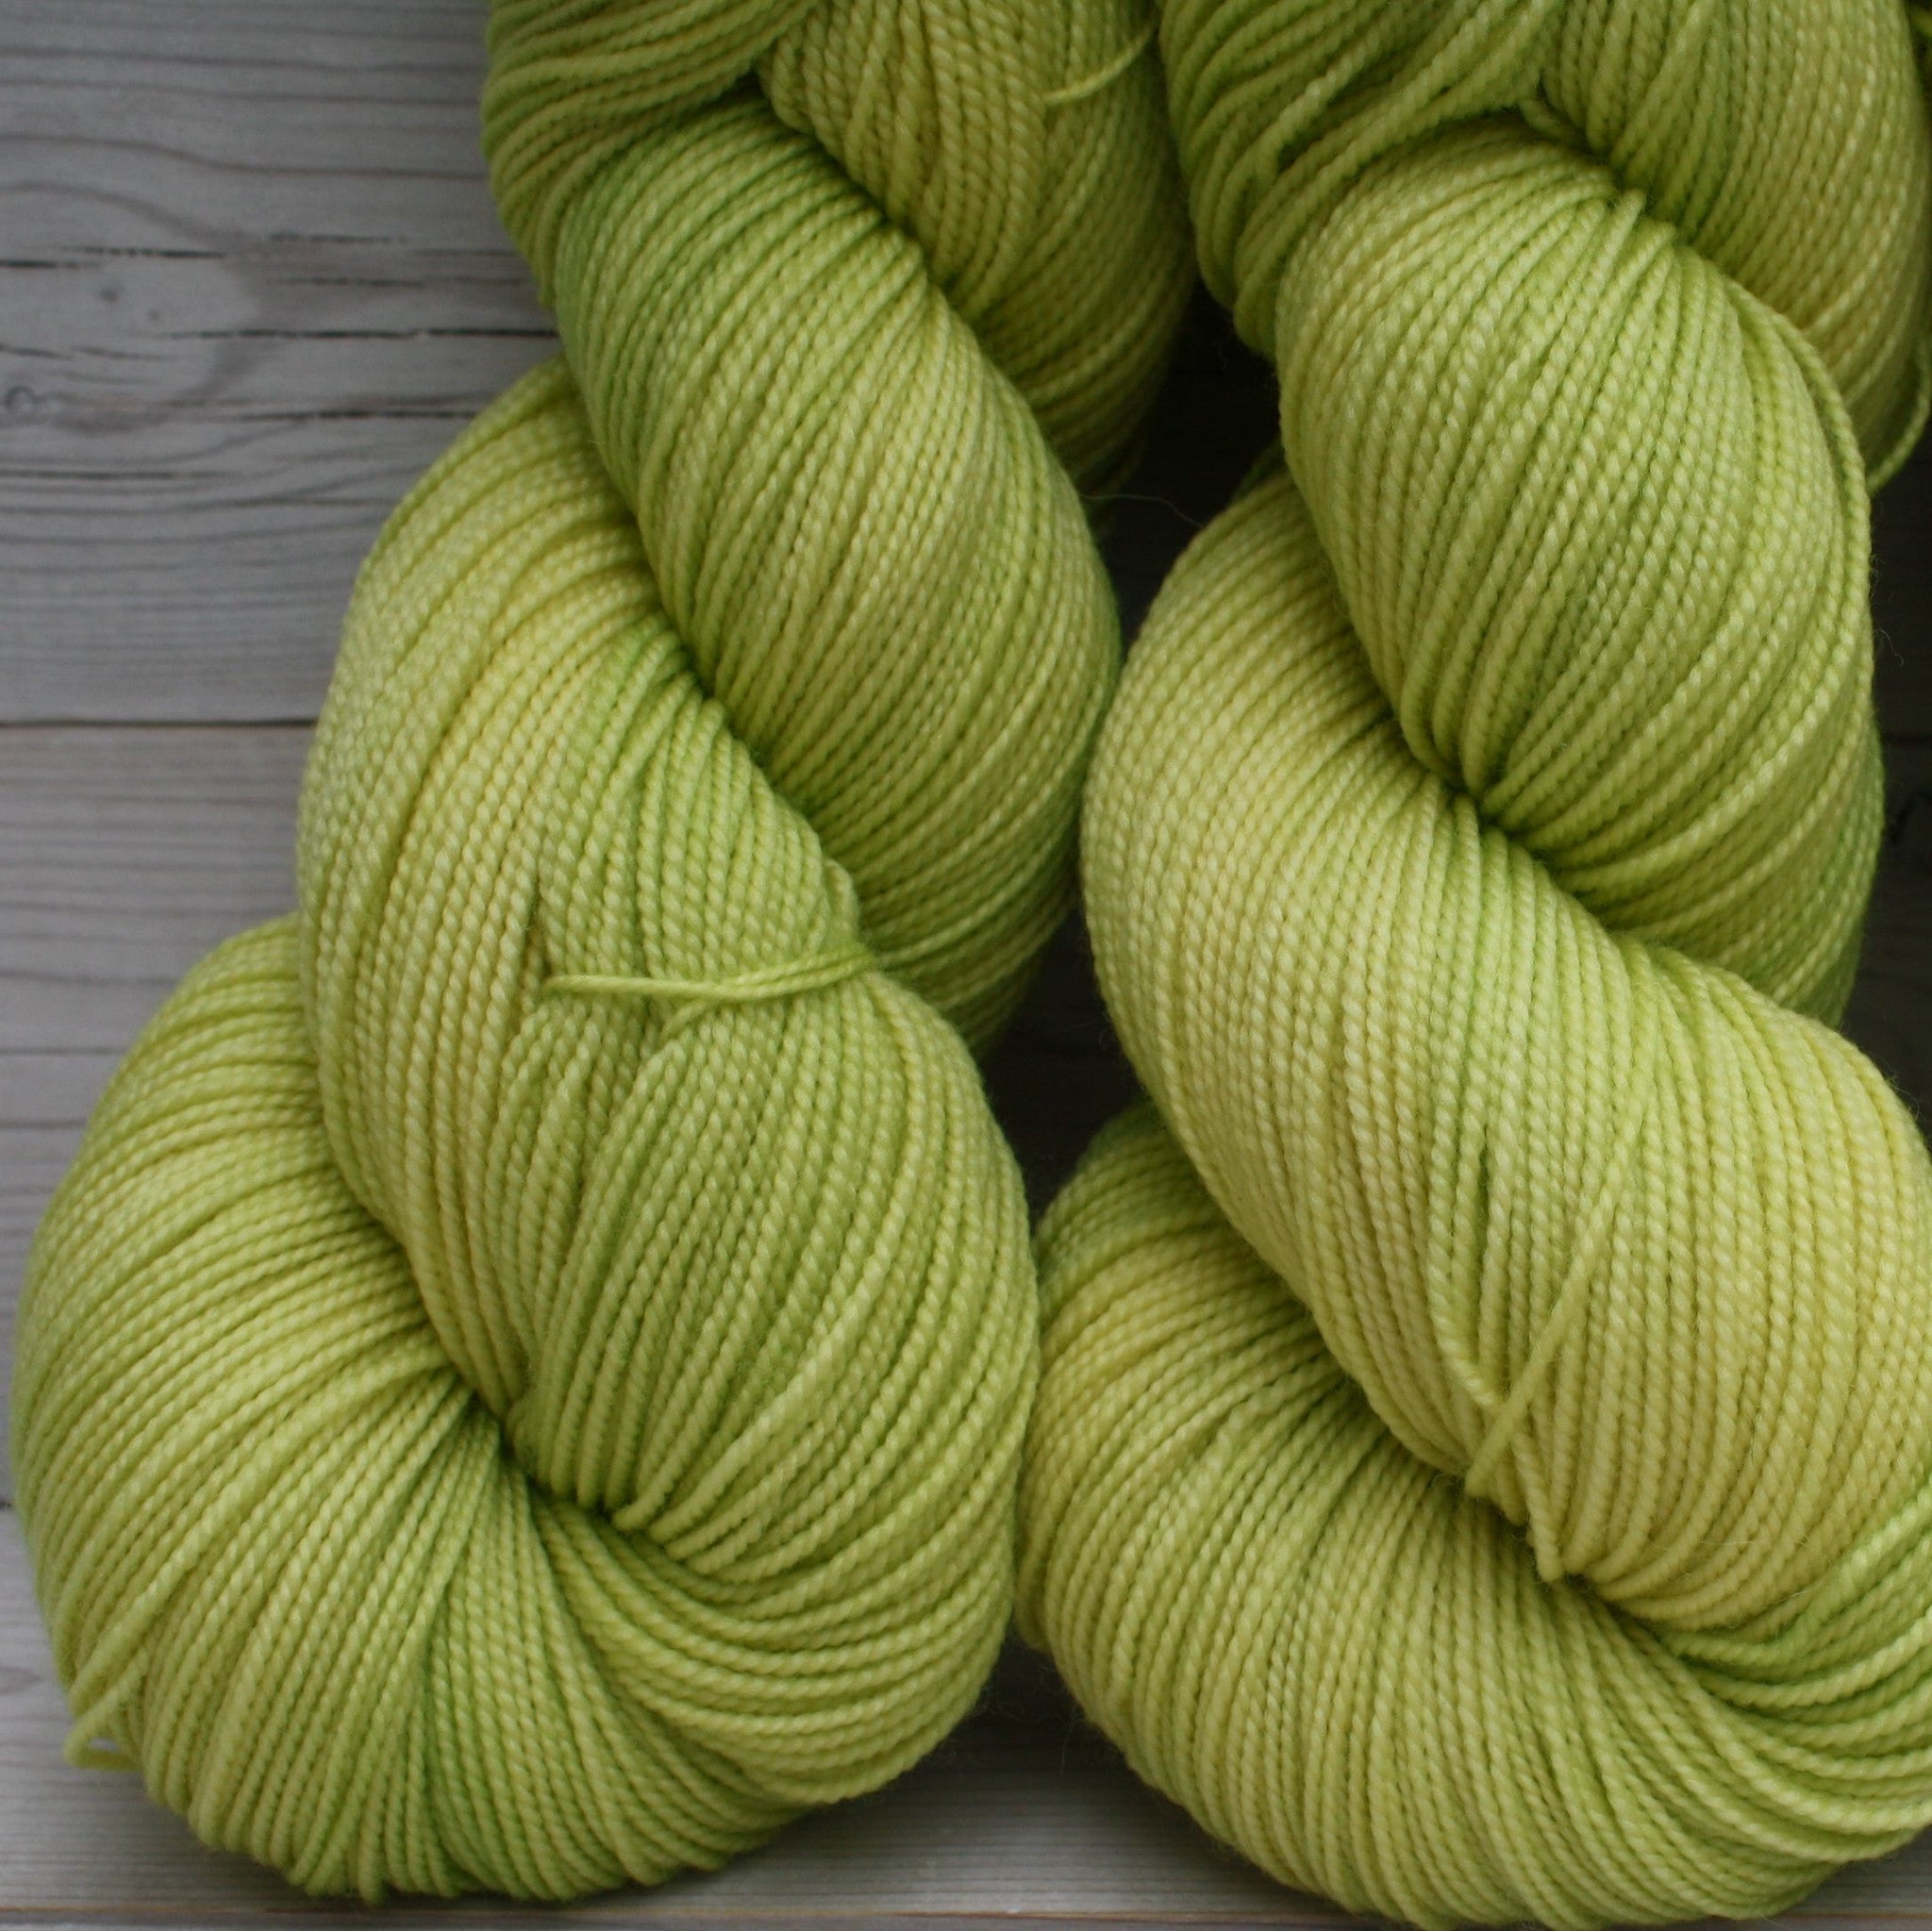 Celeste Yarn | Colorway: Lemon Lime